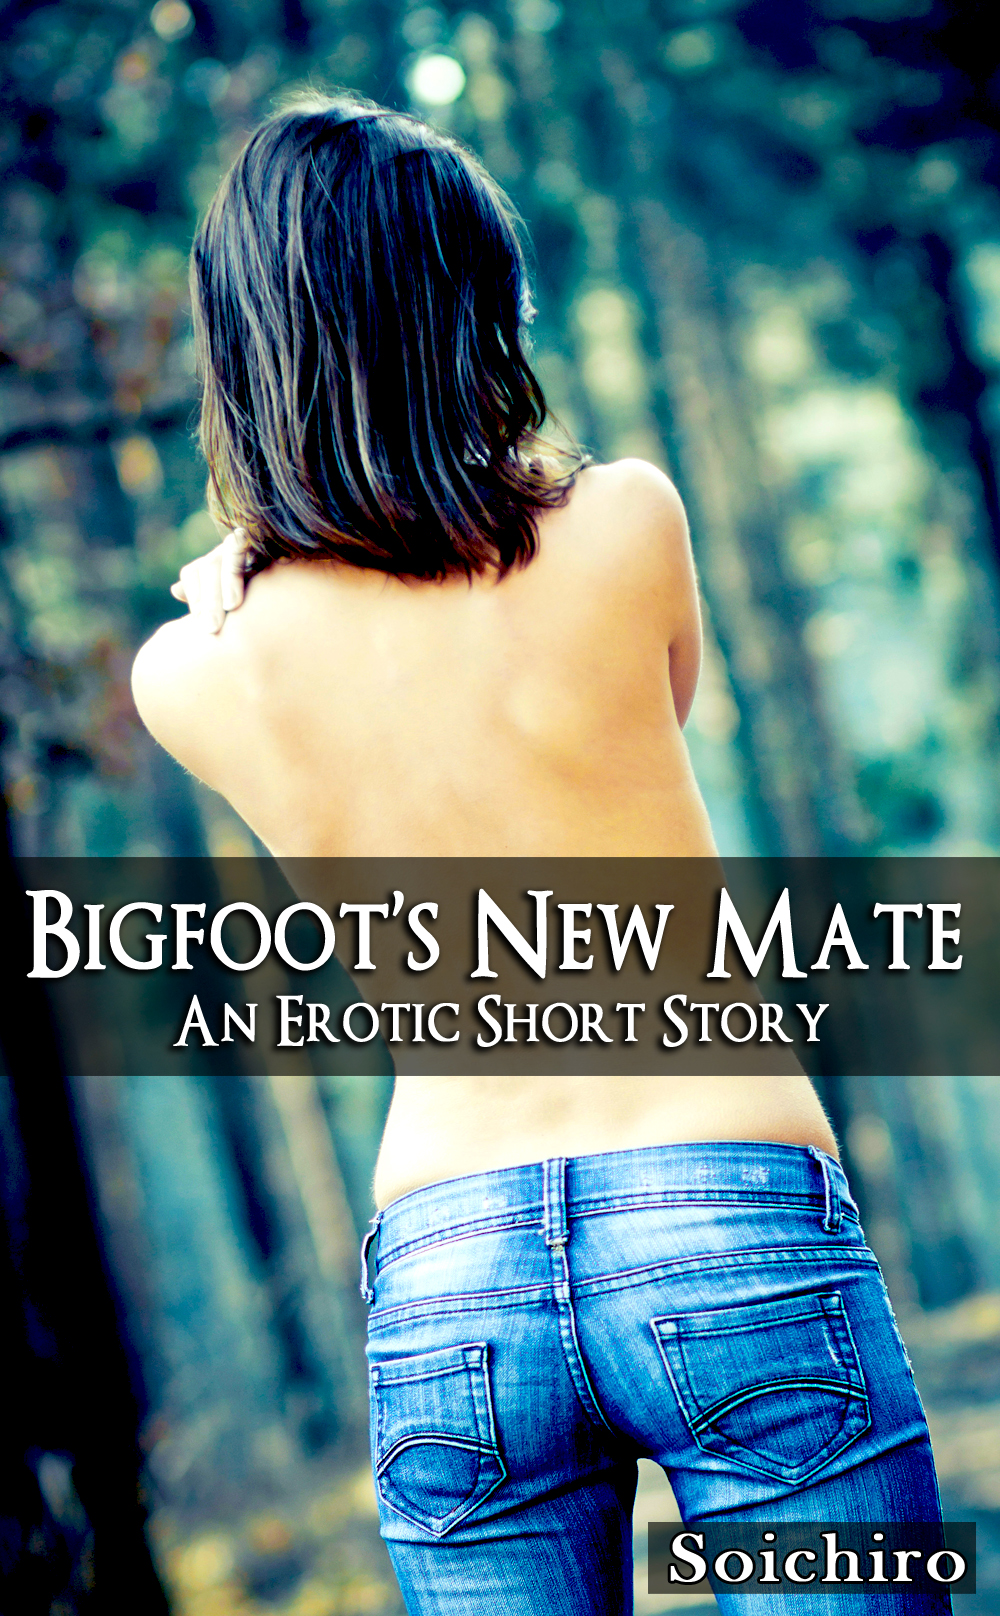 Bigfoot's New Mate - Sasquatch Erotica